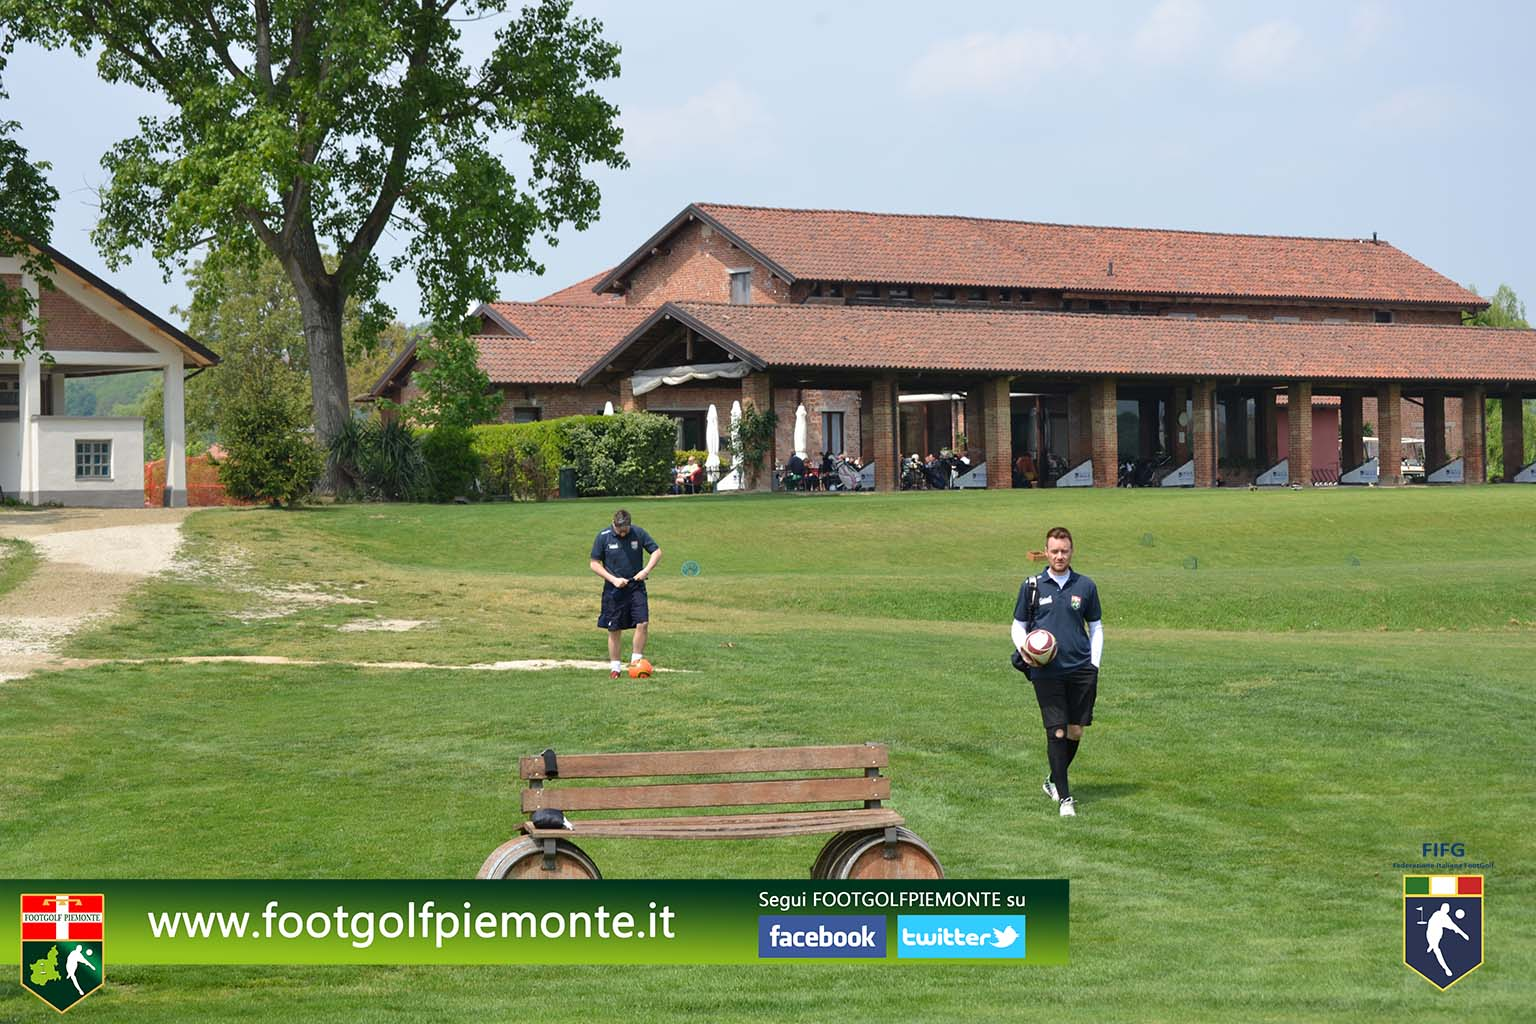 FOTO 9 Regions' Cup Footgolf Piemonte 2016 Golf Città di Asti (At) 30apr16-46